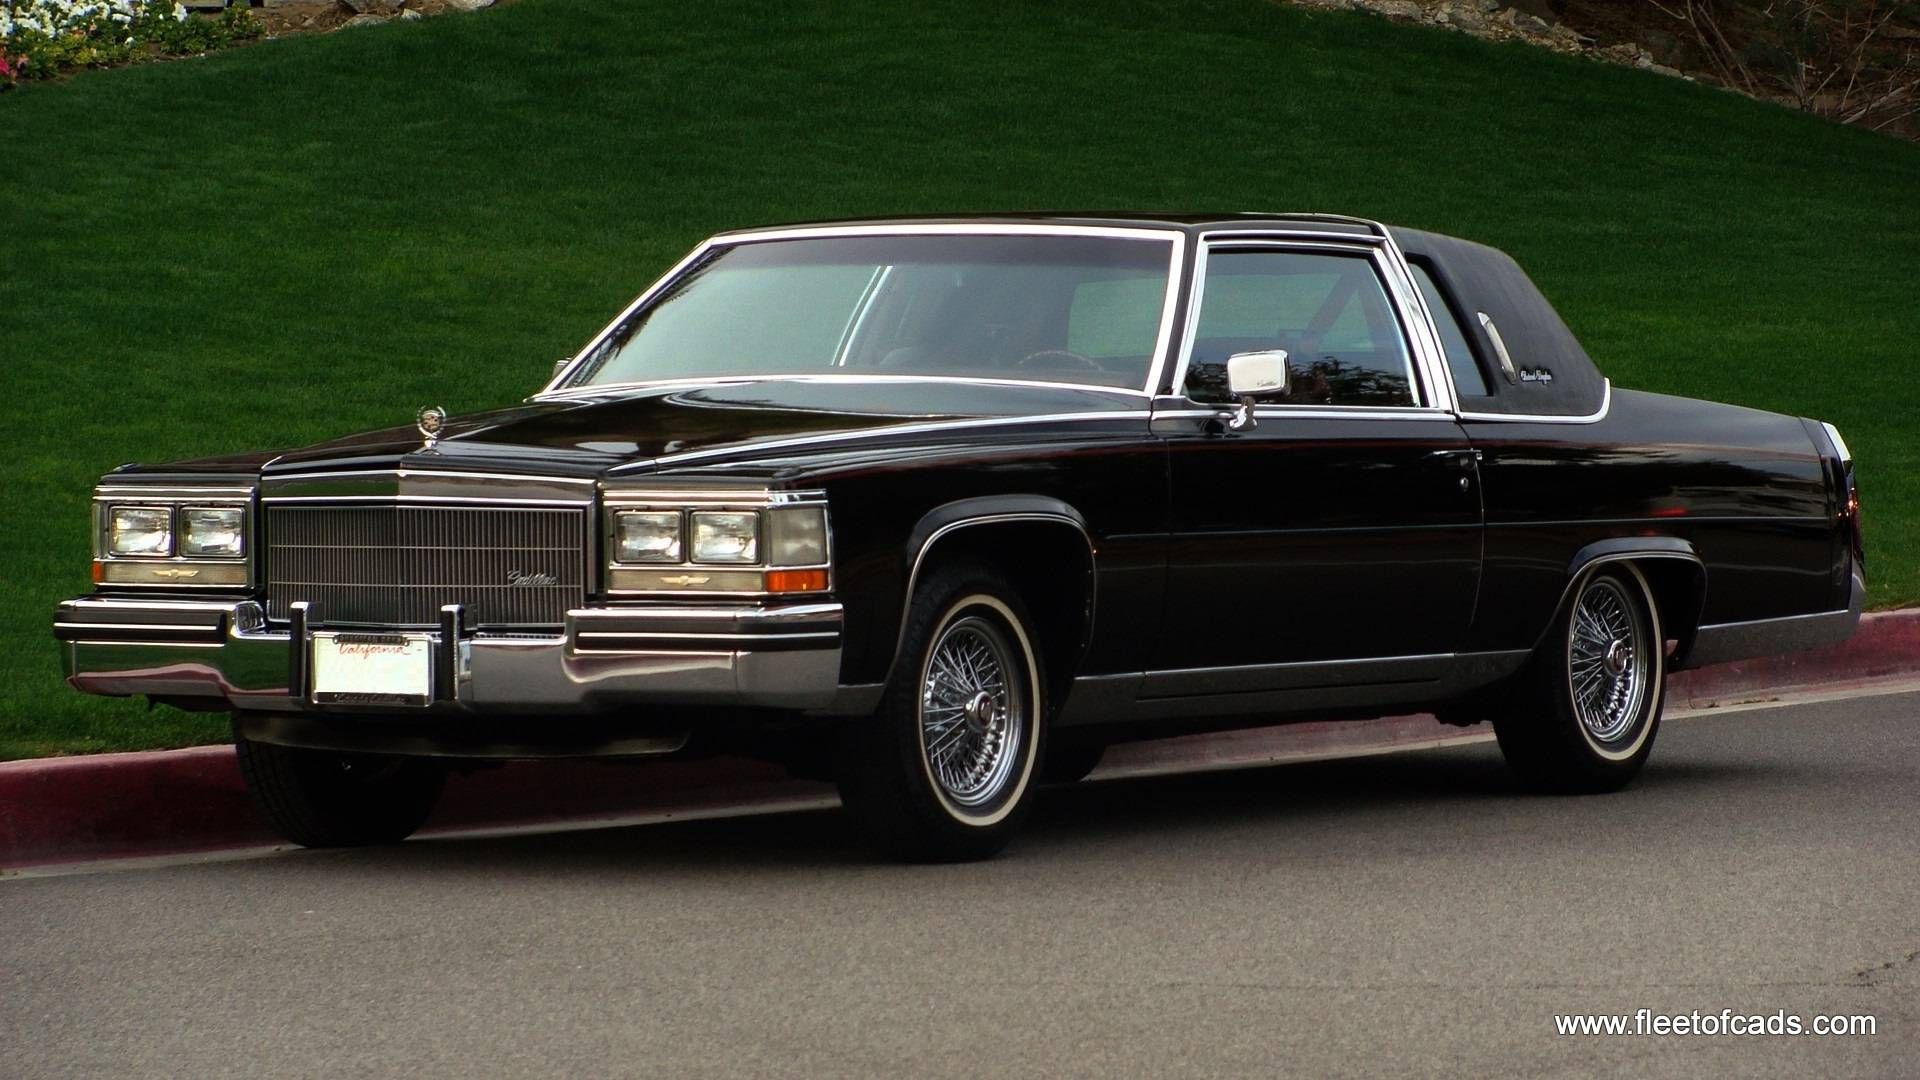 1984 Cadillac Fleetwood Brougham Coupe | Cadillac: 1980 - 1984 ...